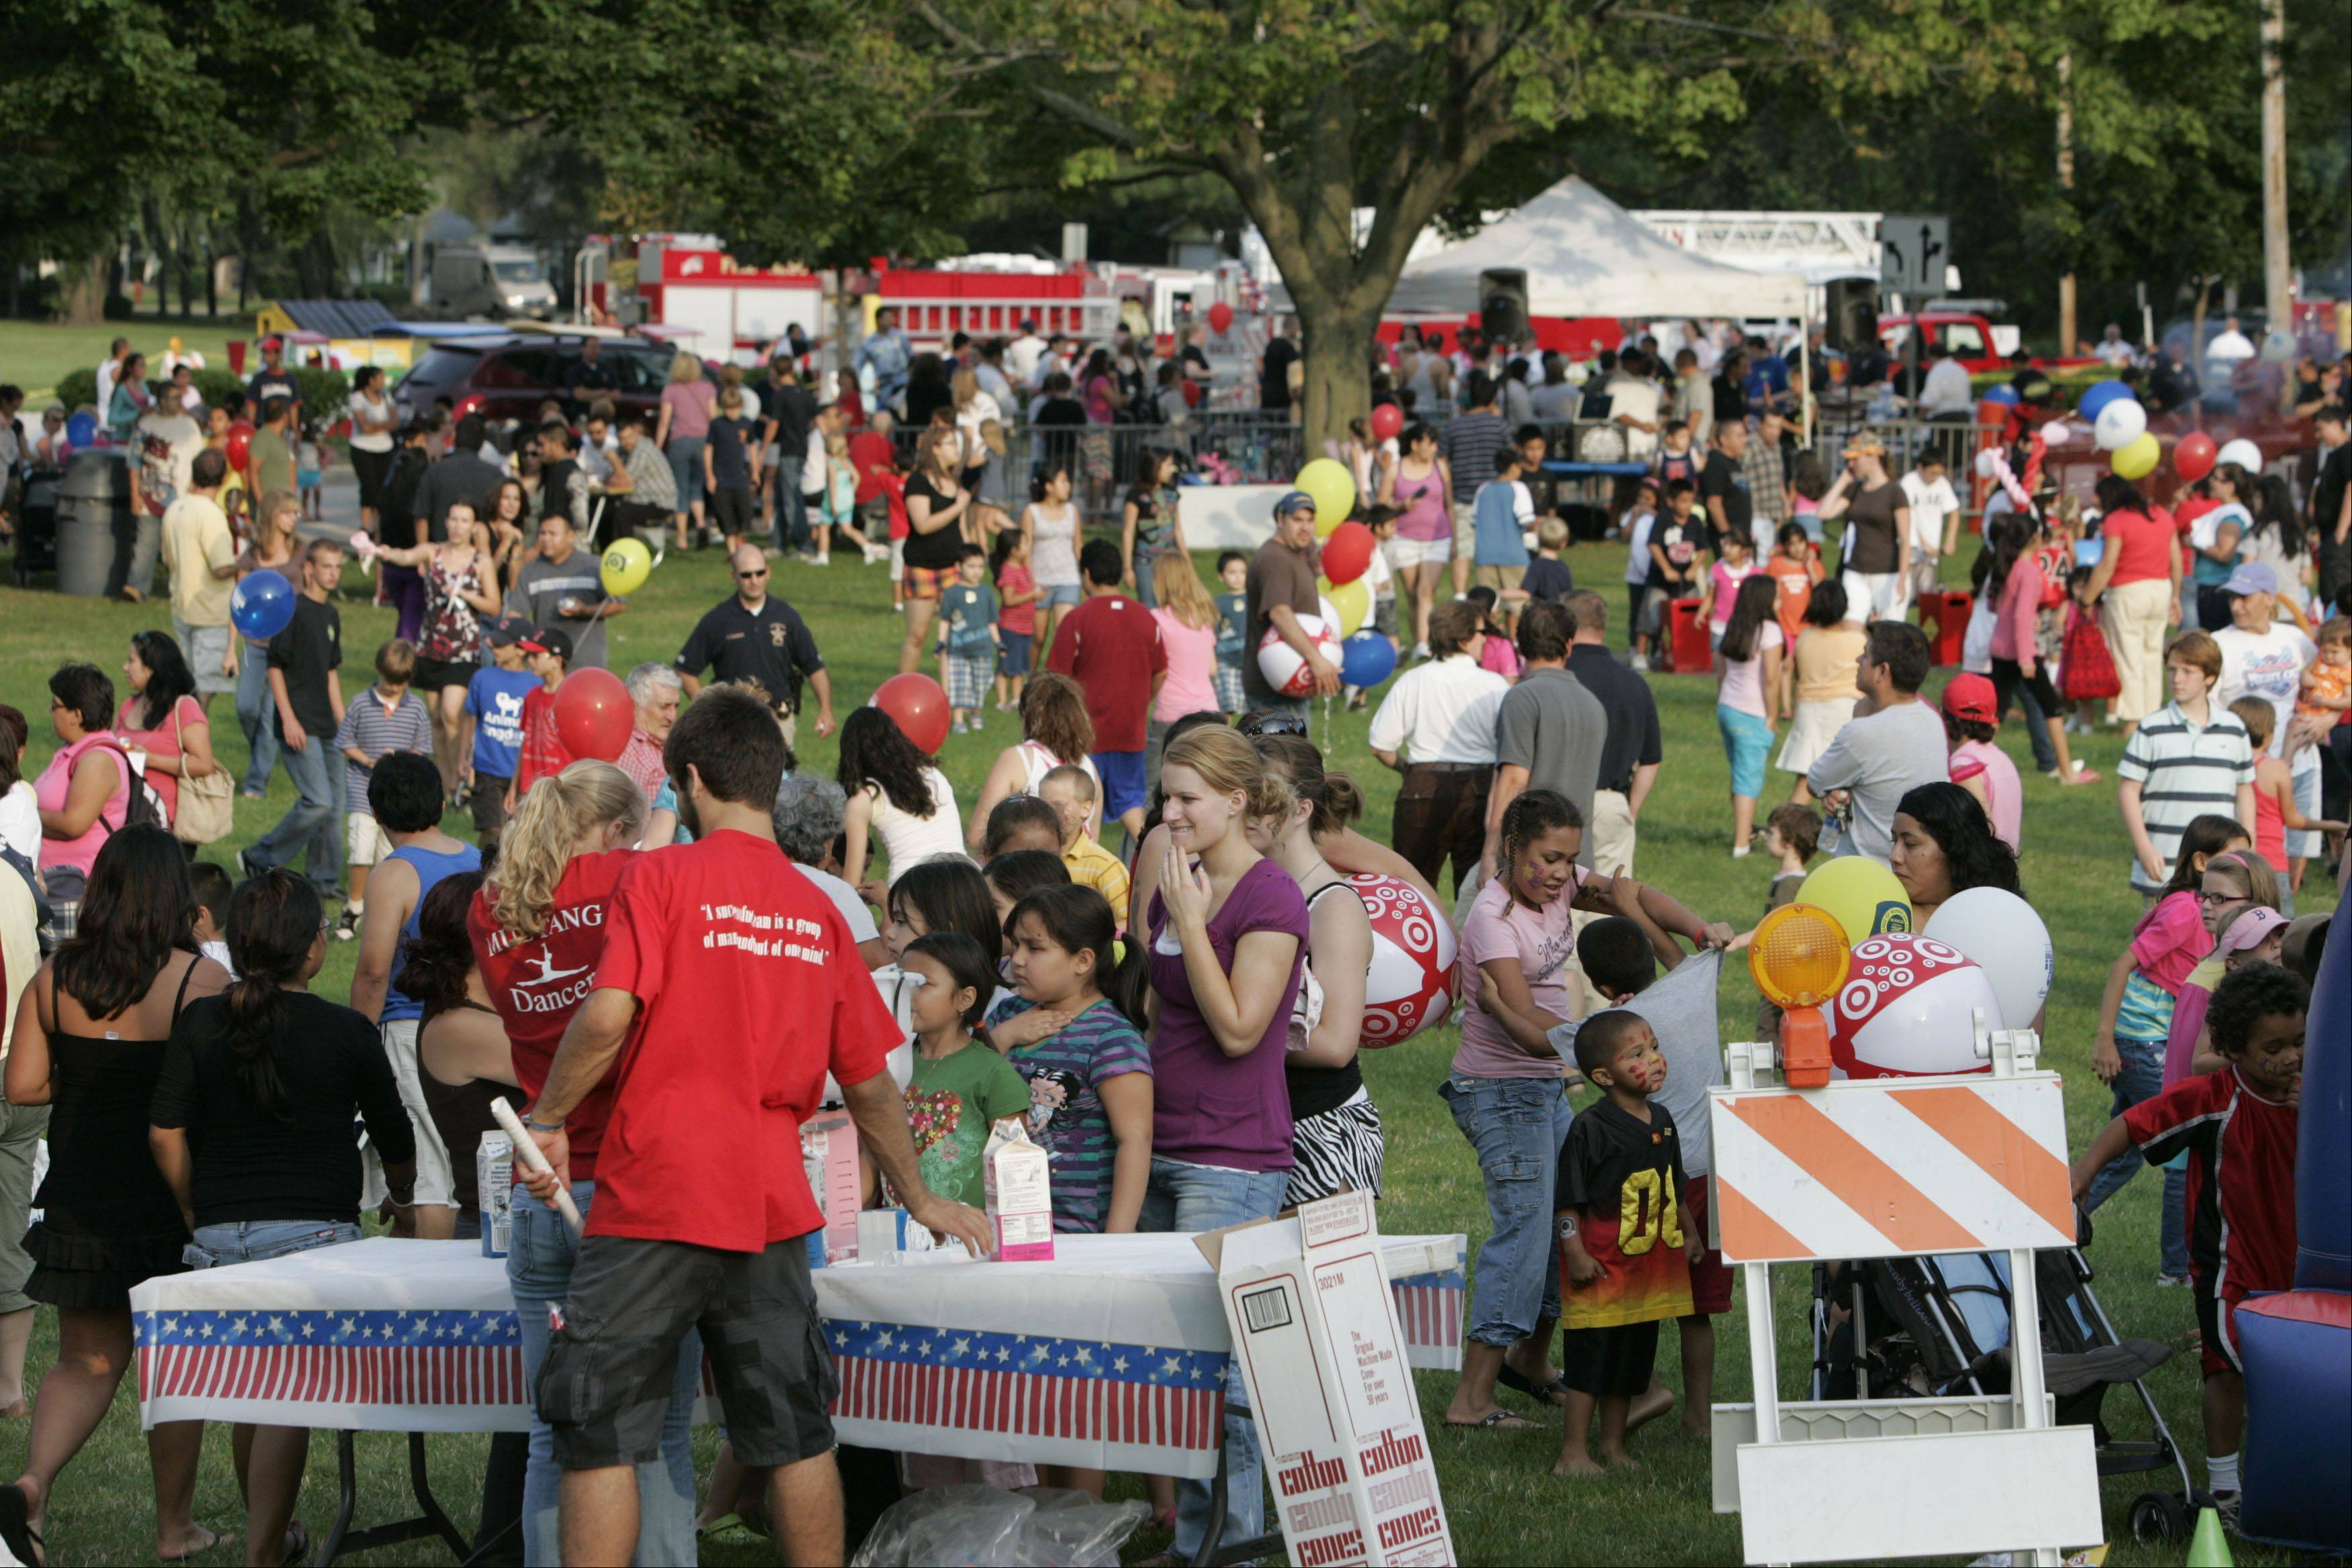 Mundelein will again host a National Night Out event this year, featuring a flashlight walk, obstacle course, face painting and other activities. The event takes place Aug. 7.